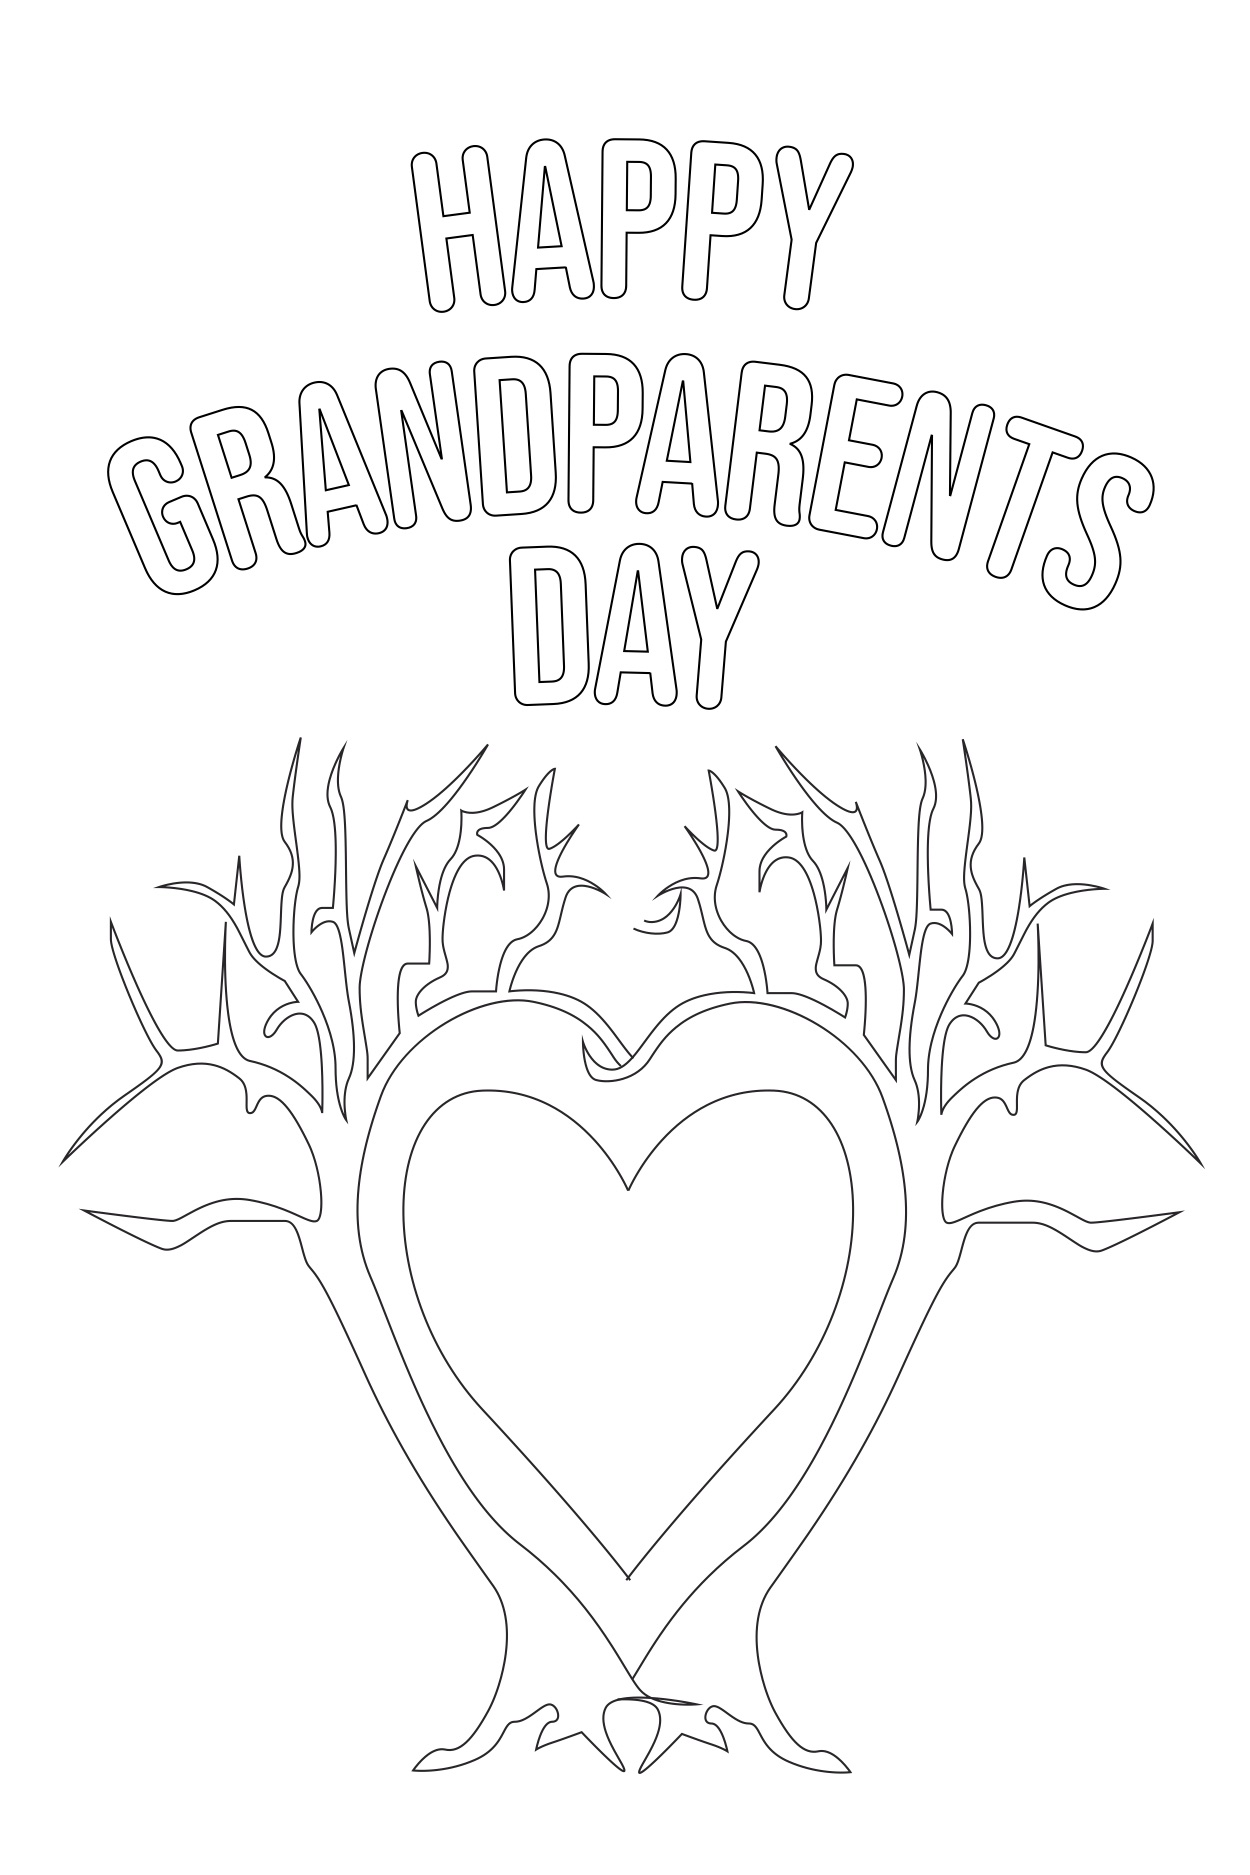 picture regarding Printable Grandparents Day Card named Tremendous Cute Printable Grandparents Working day Playing cards for Children